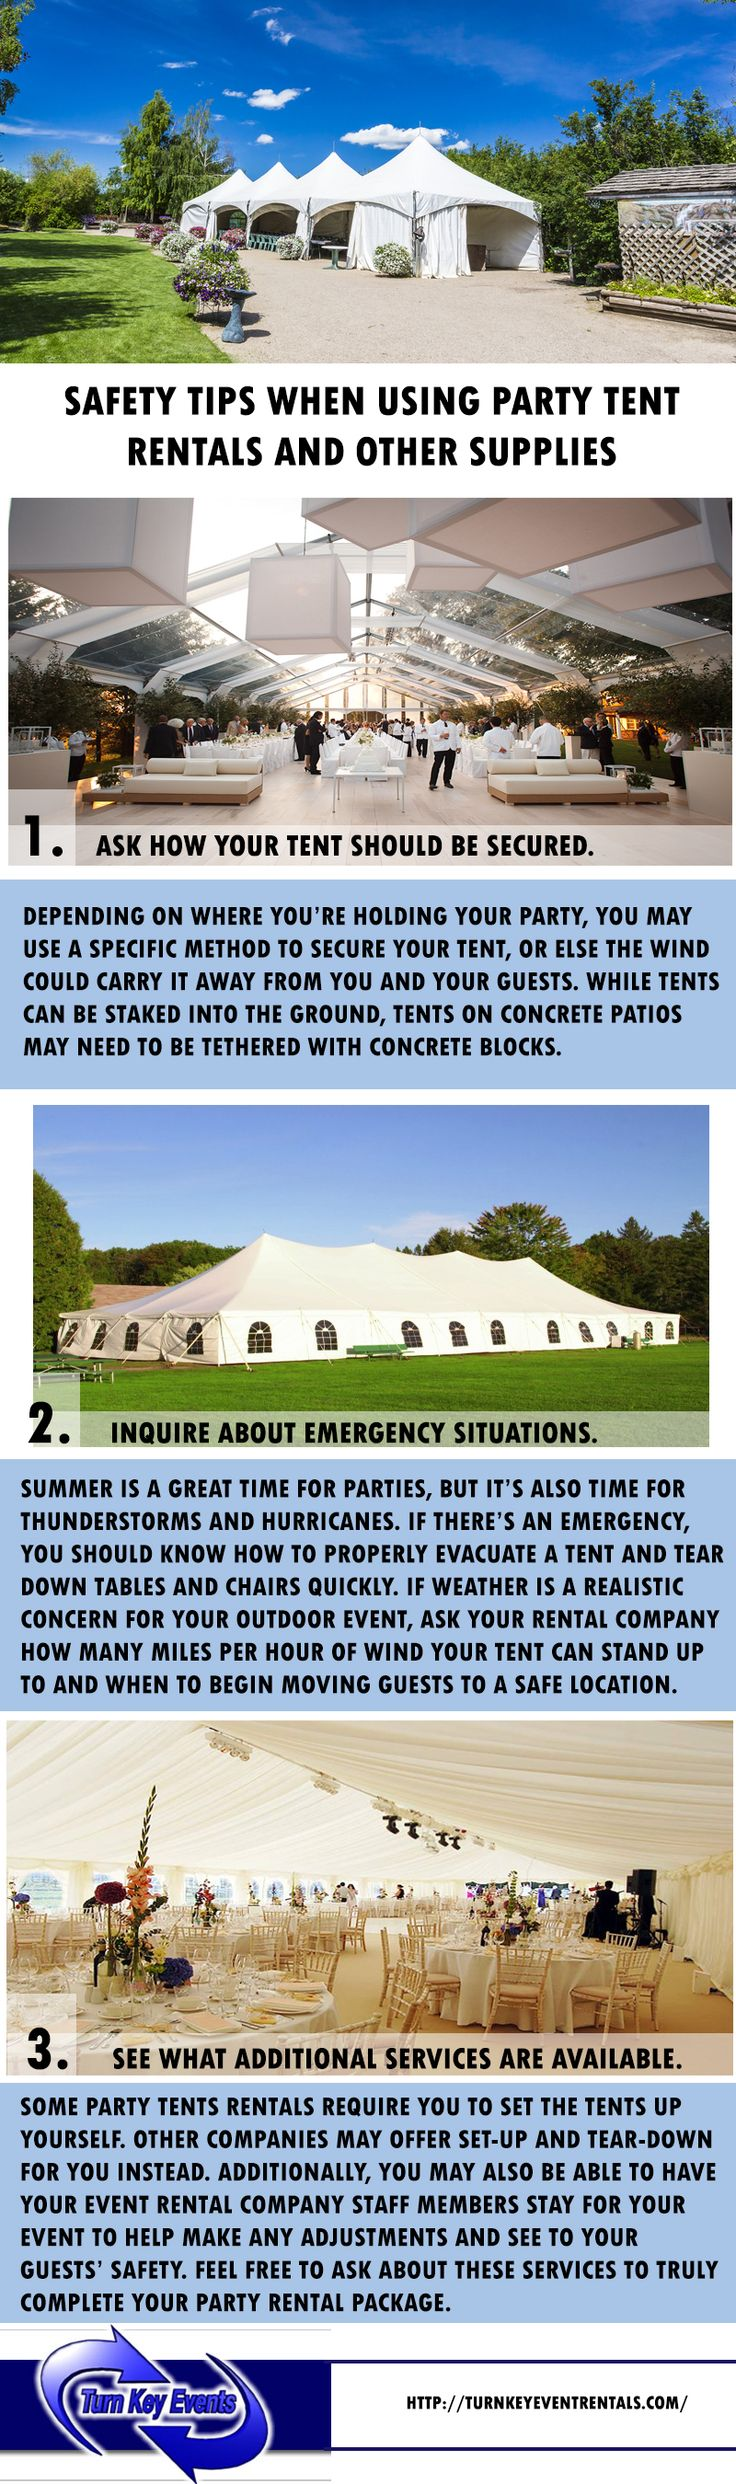 Tent rentals in Houston Texas for an outdoor event? You have to know the right questions to ask the party rental supplier. Visit www.turnkeyeventrentals.com today!